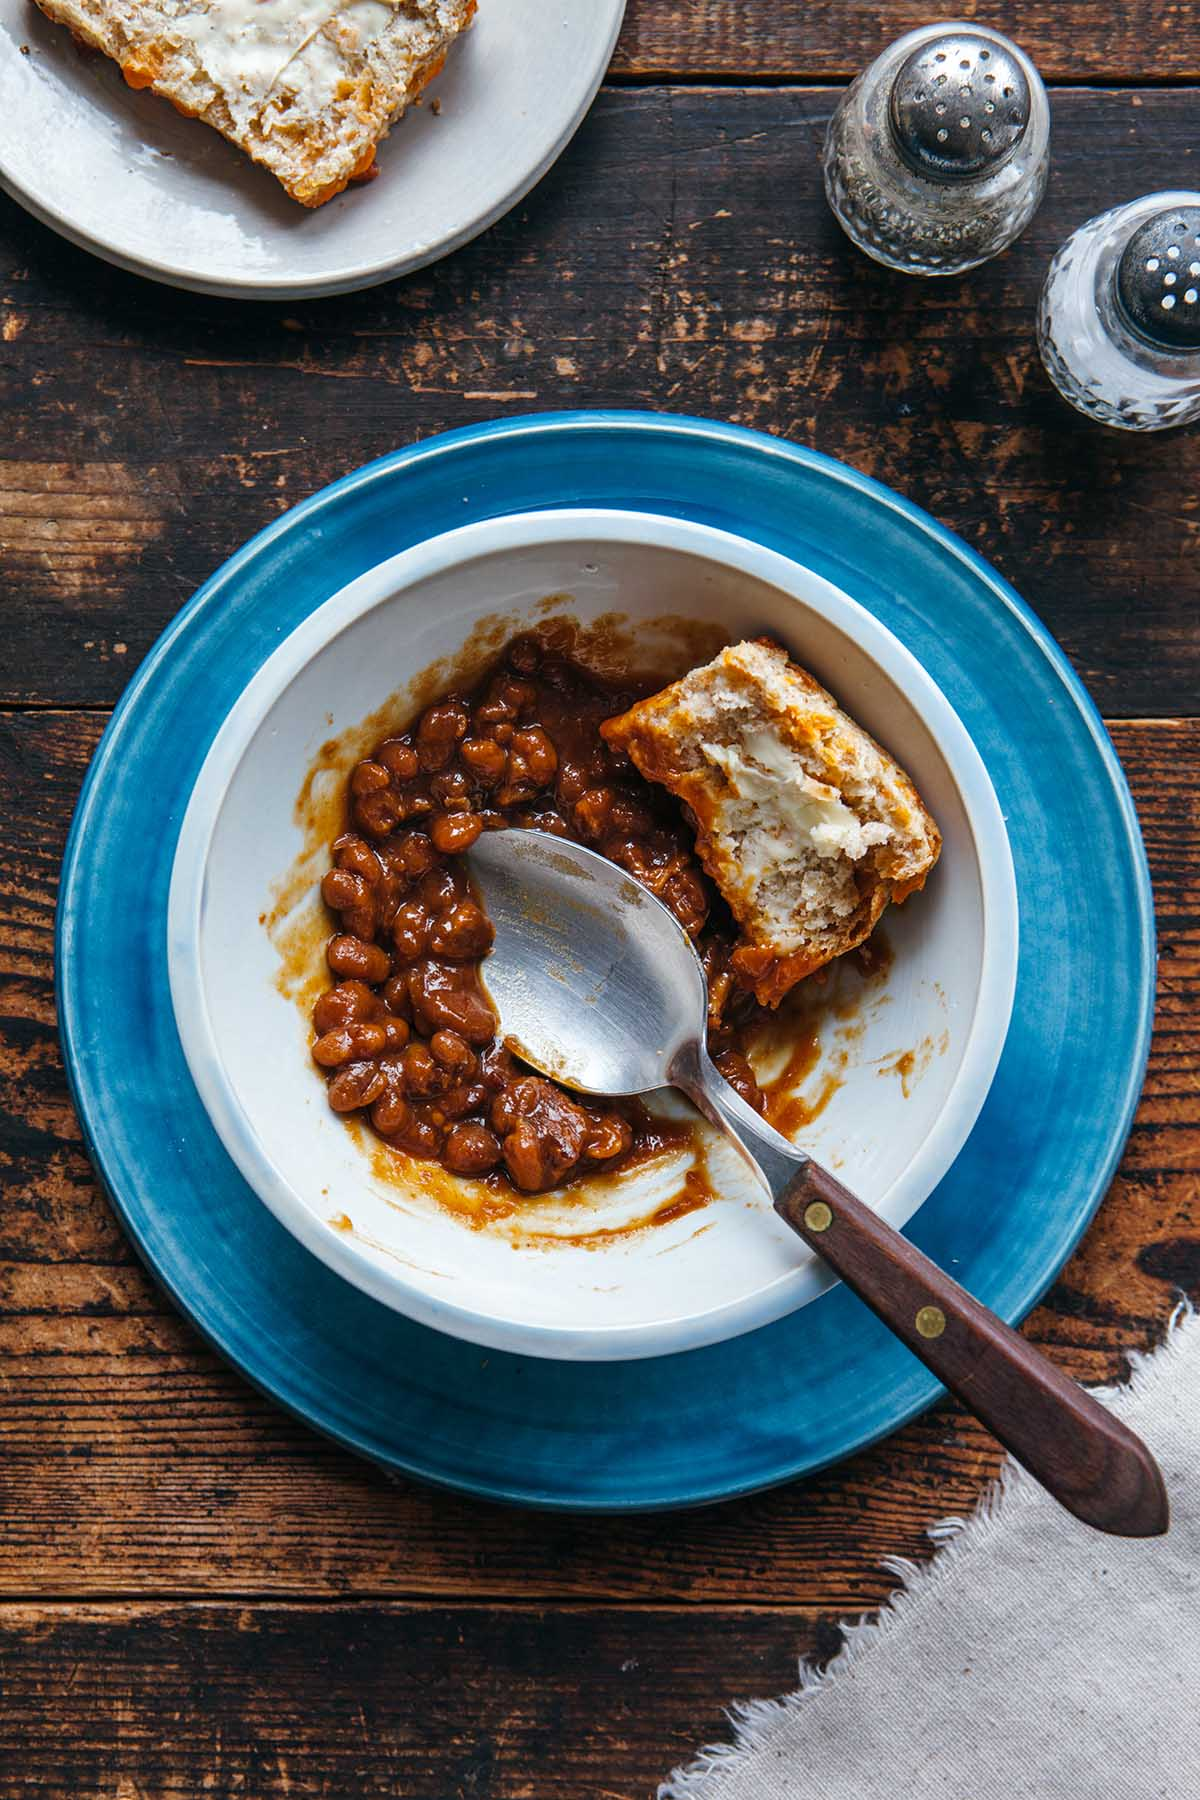 A bowl of molasses baked beans with a homemade tea biscuit.